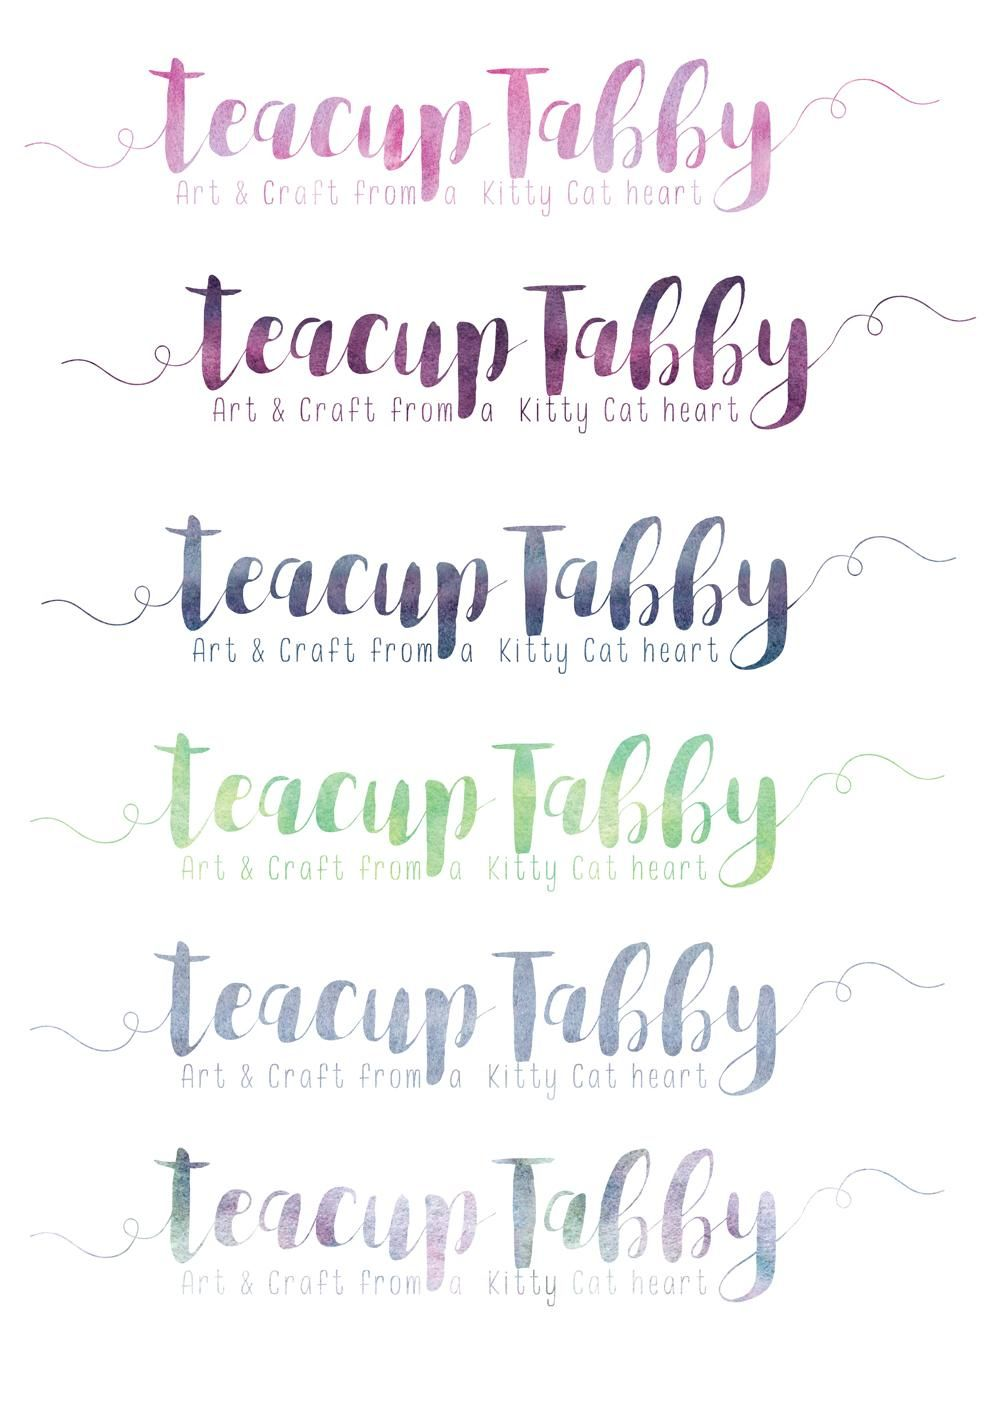 Watercolour Textures for use in branding - image 3 - student project